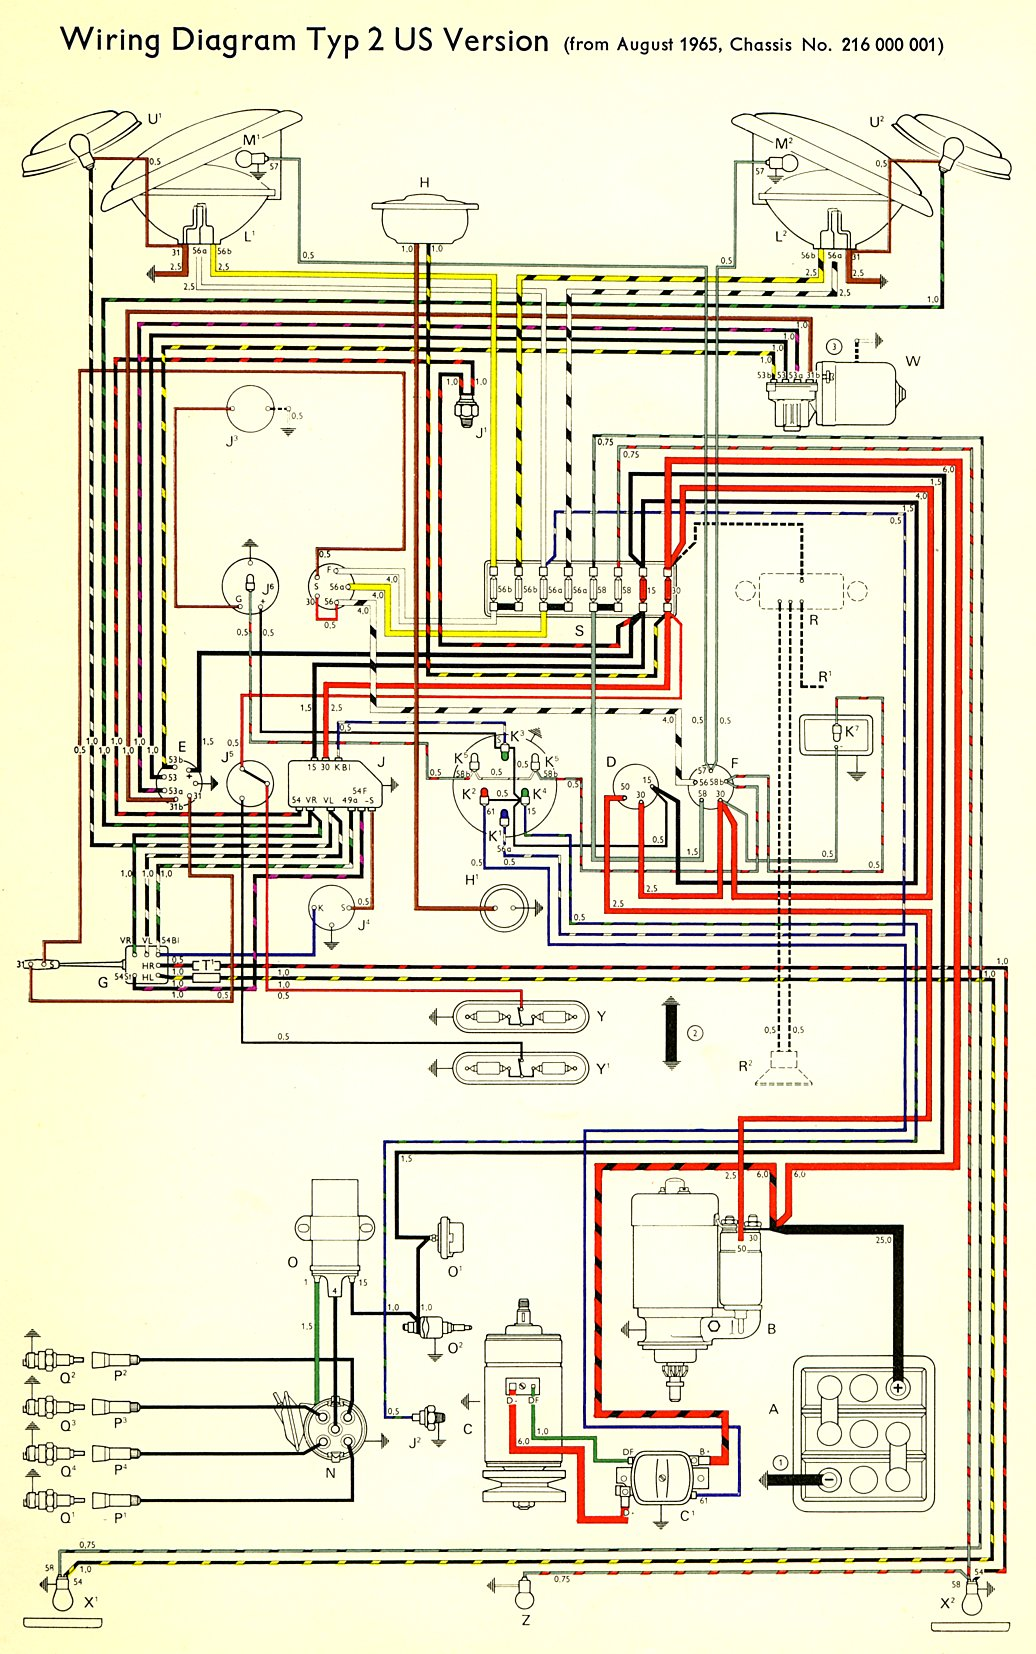 [NRIO_4796]   F055F 1966 Mustang Radio Wiring Diagram | Wiring Resources | 1966 Mustang Radio Wiring |  | Wiring Resources